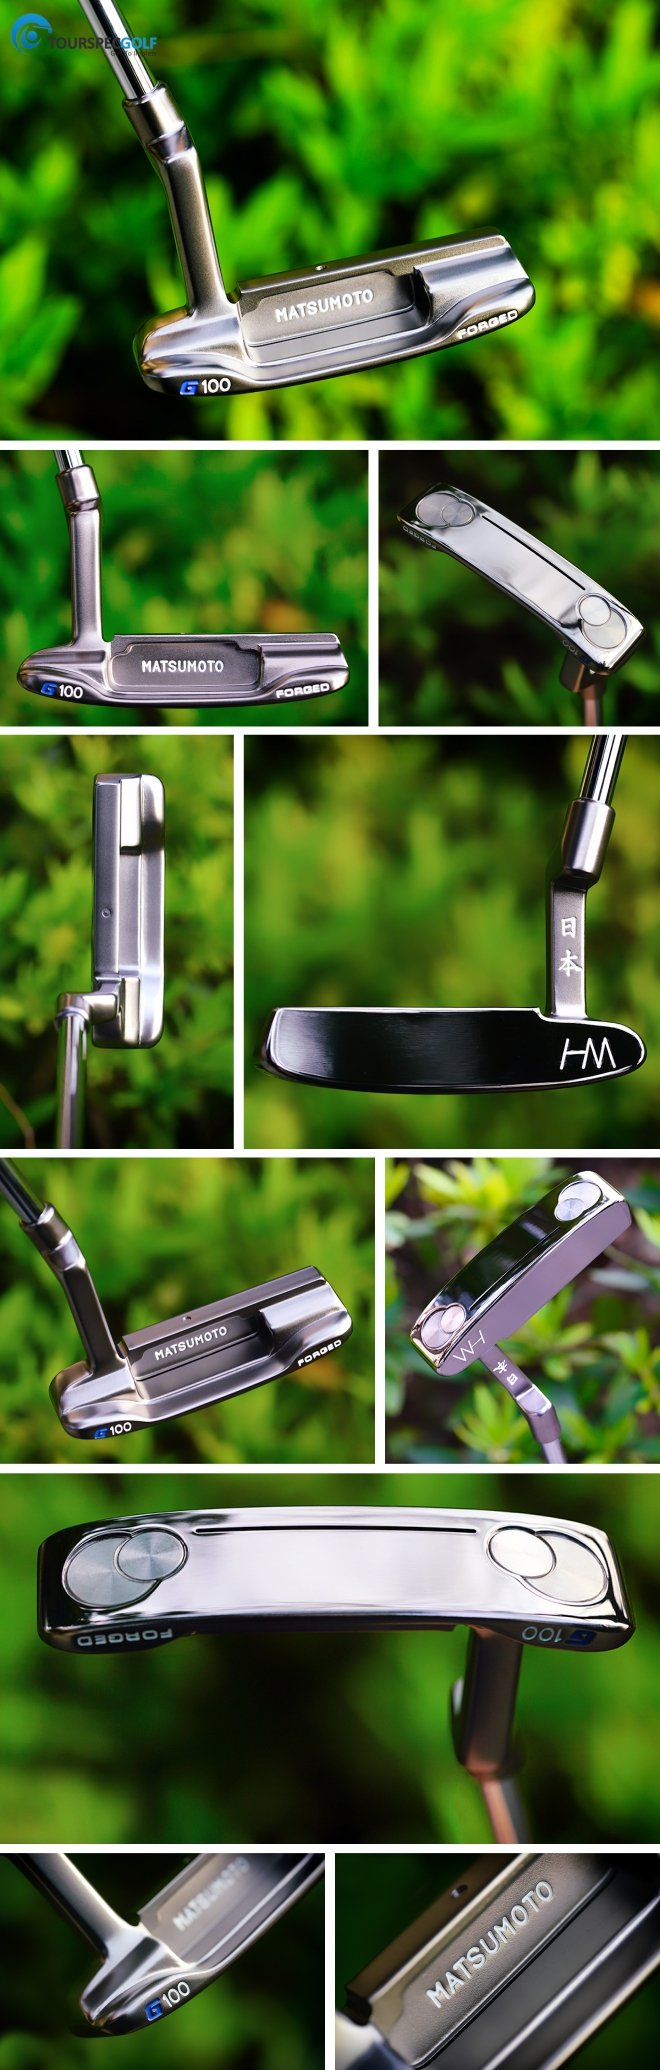 Hiro Matsumoto 100 Forged Putter by Golds Factory